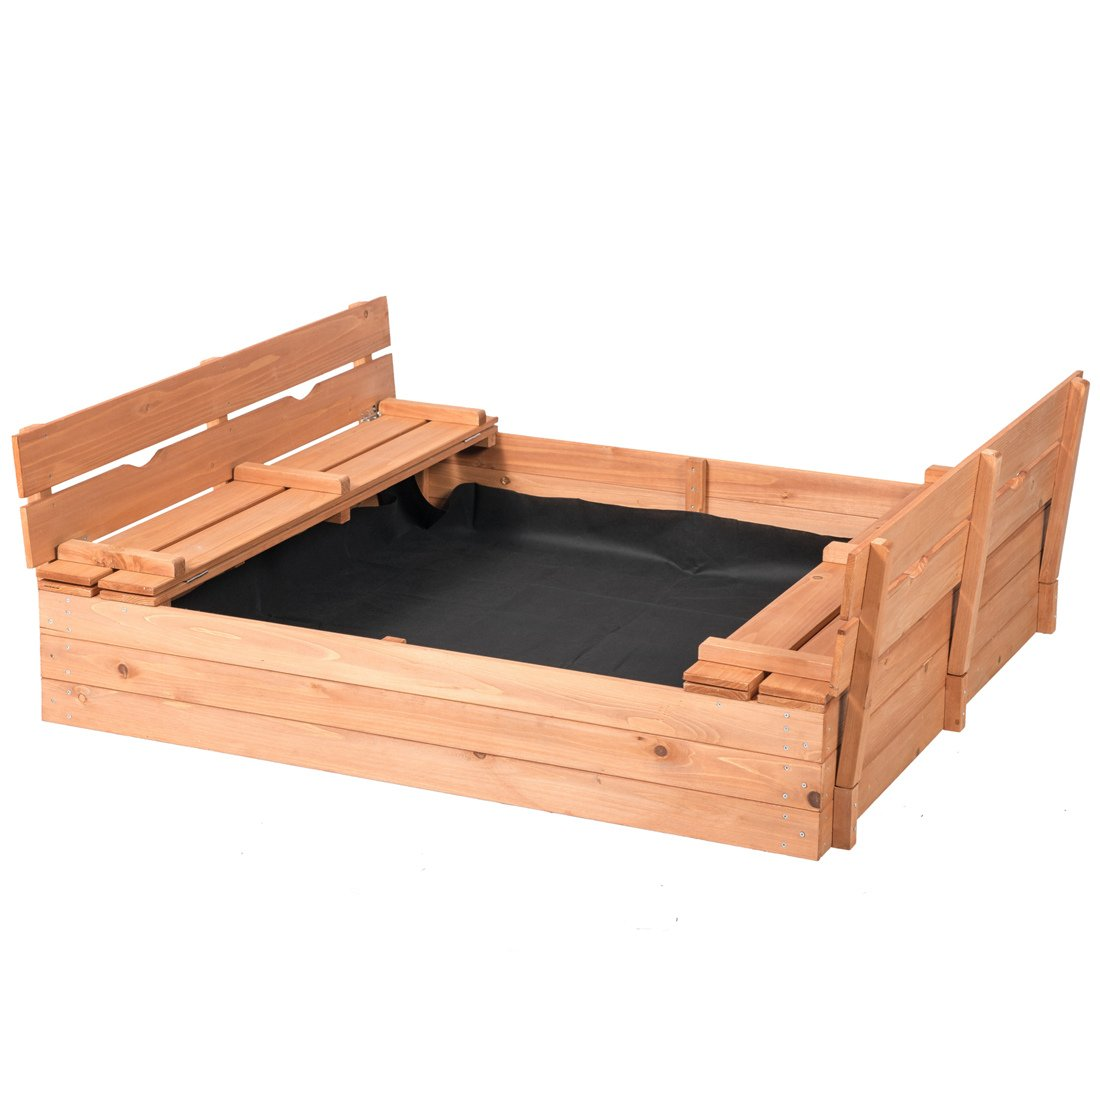 Good Life Outdoor Sandbox with Covered and Bench Seats Kids Play Sand for Sand Box Toys Wood Natural Color 47'' x 47'' Size by Good Life USA (Image #1)